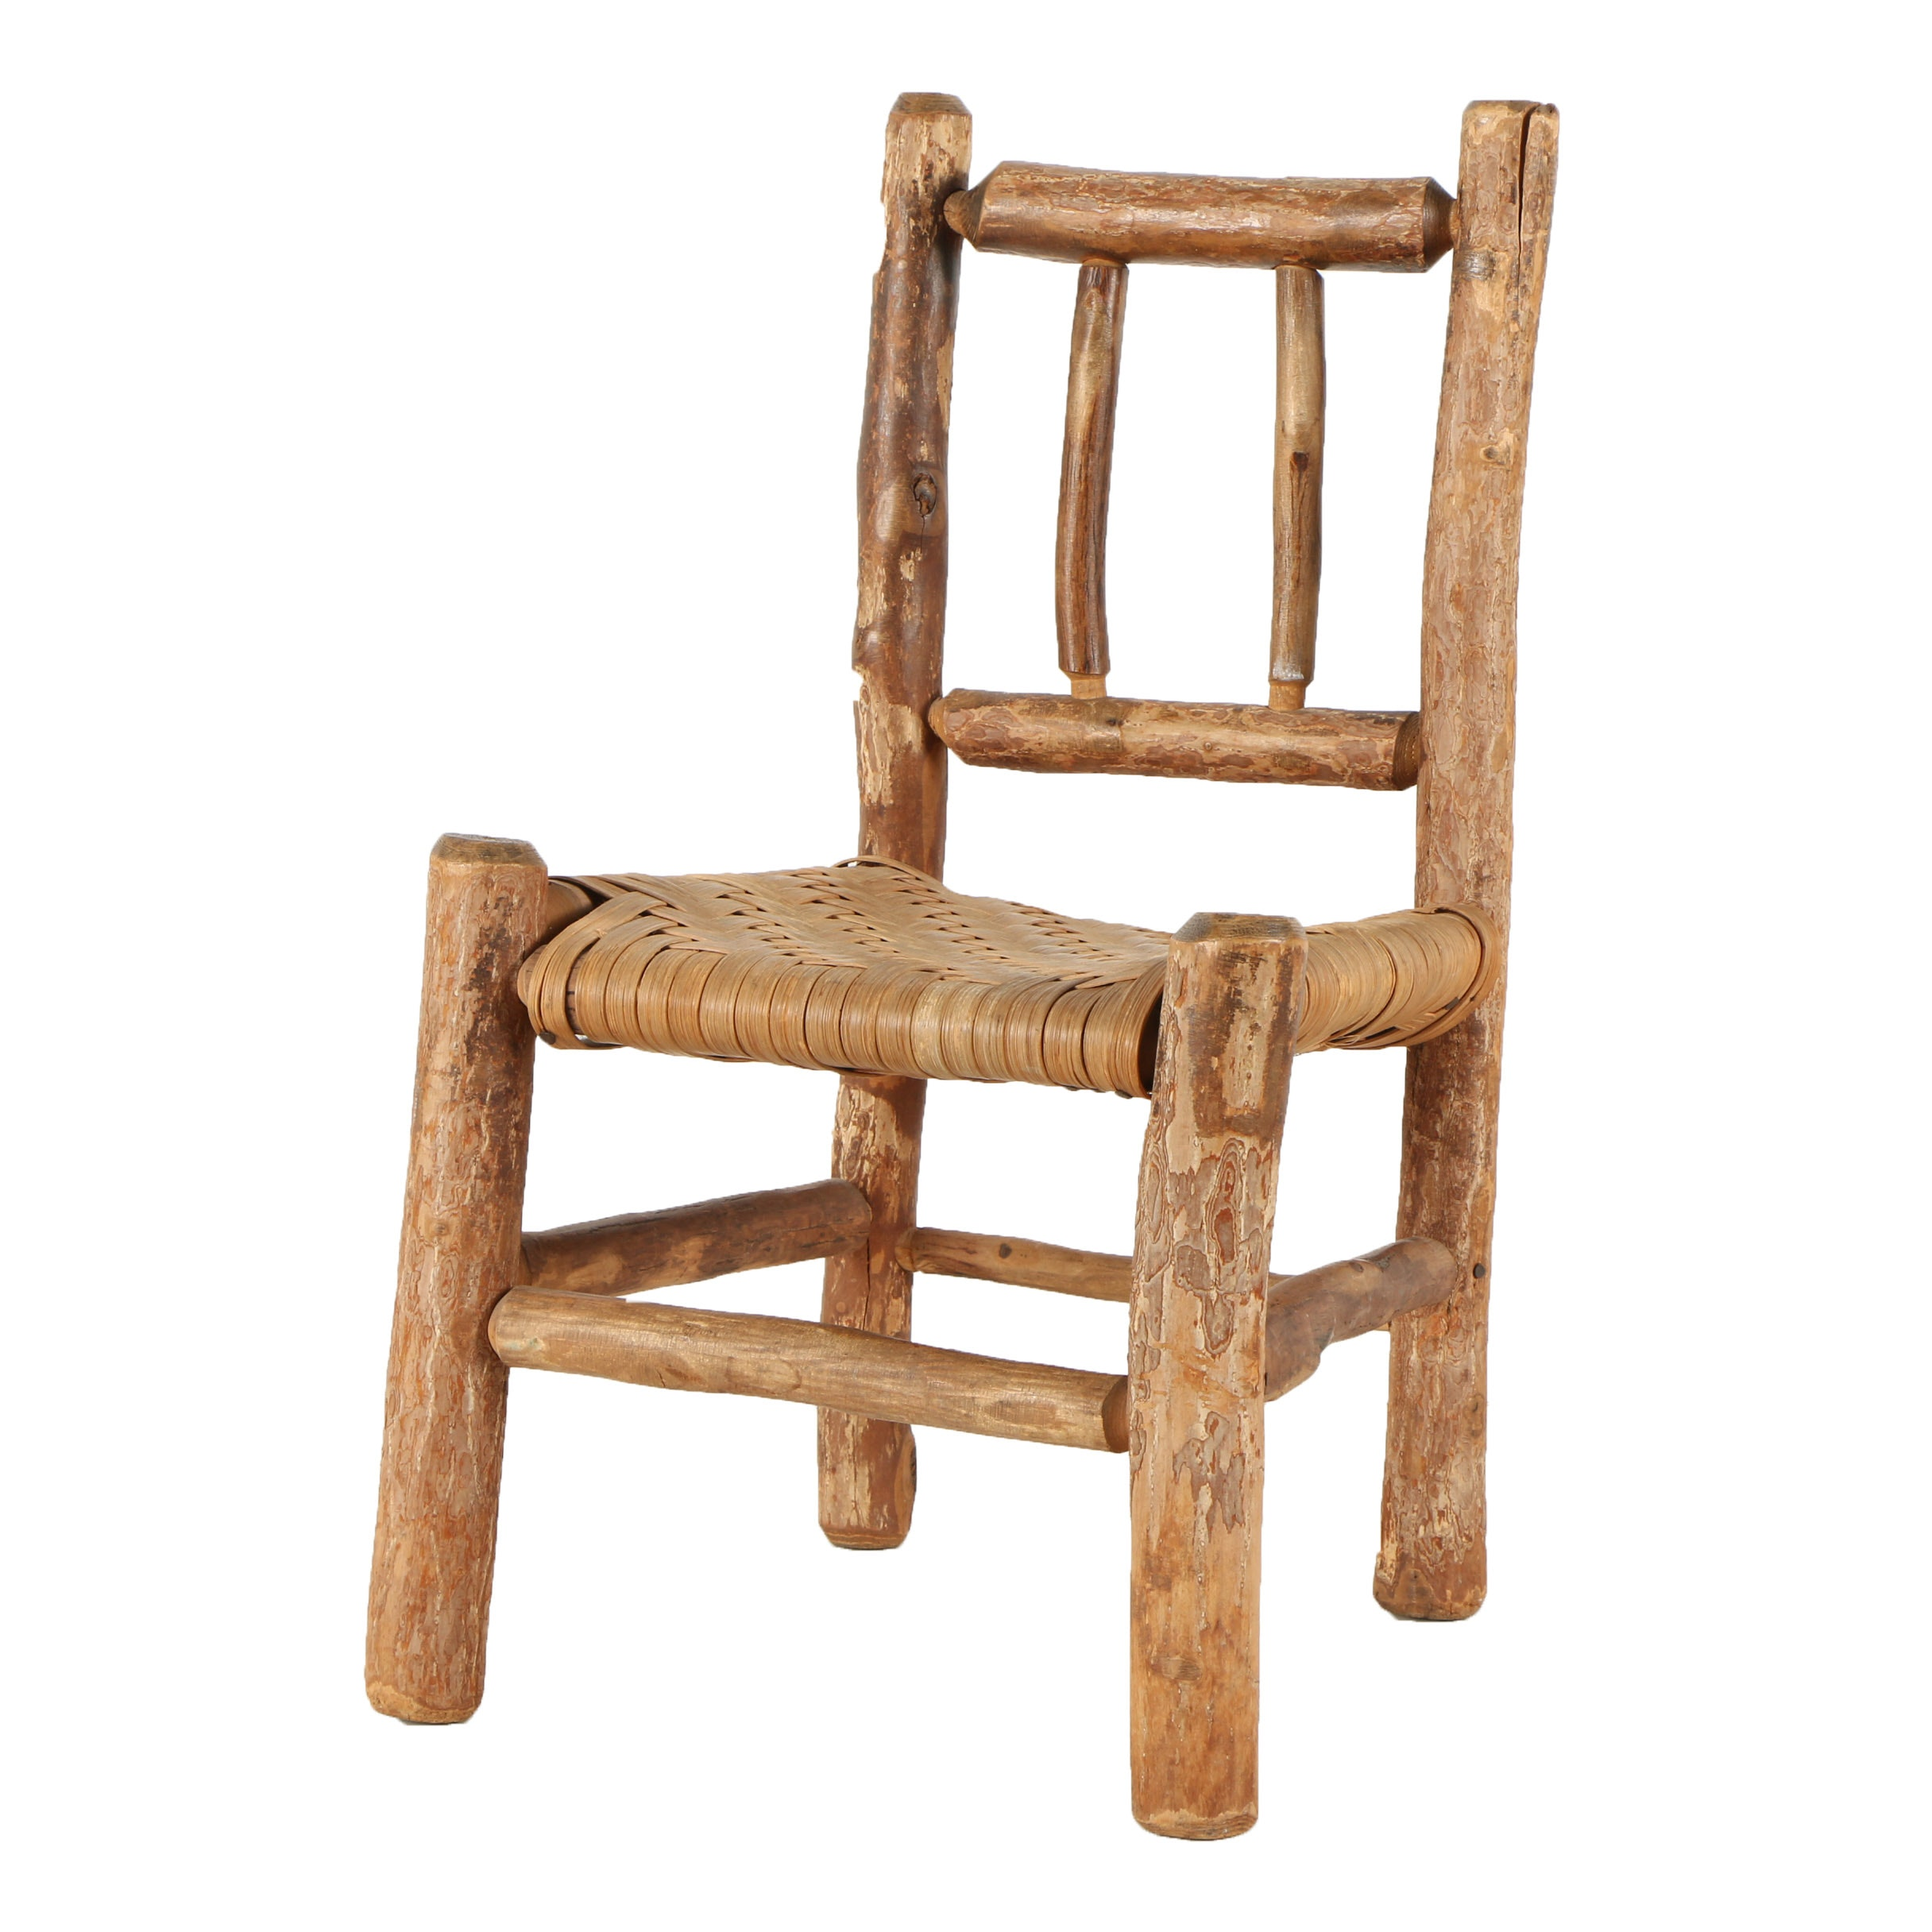 Vintage Wooden Child's Chair